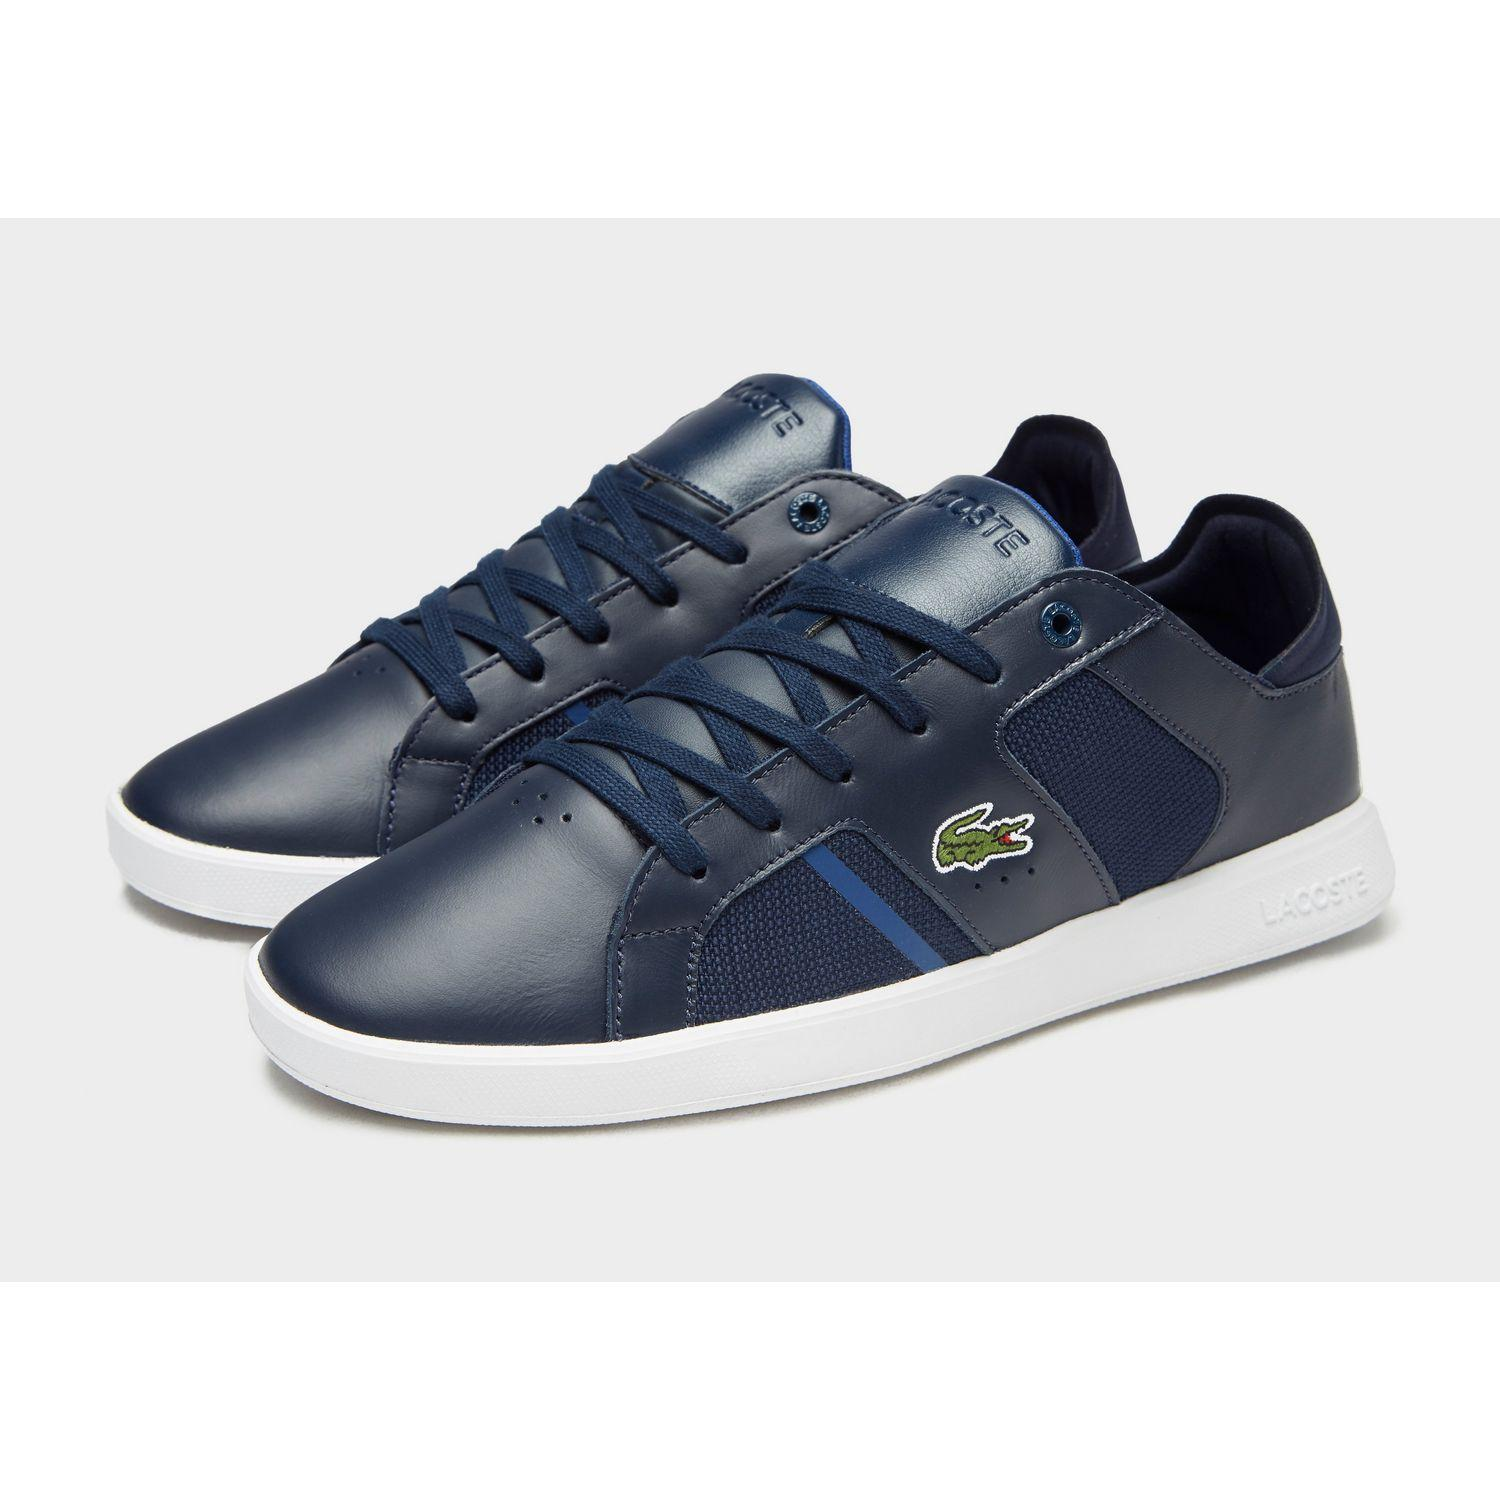 2e5625c8045081 Lyst - Lacoste Novas in Blue for Men - Save 59%